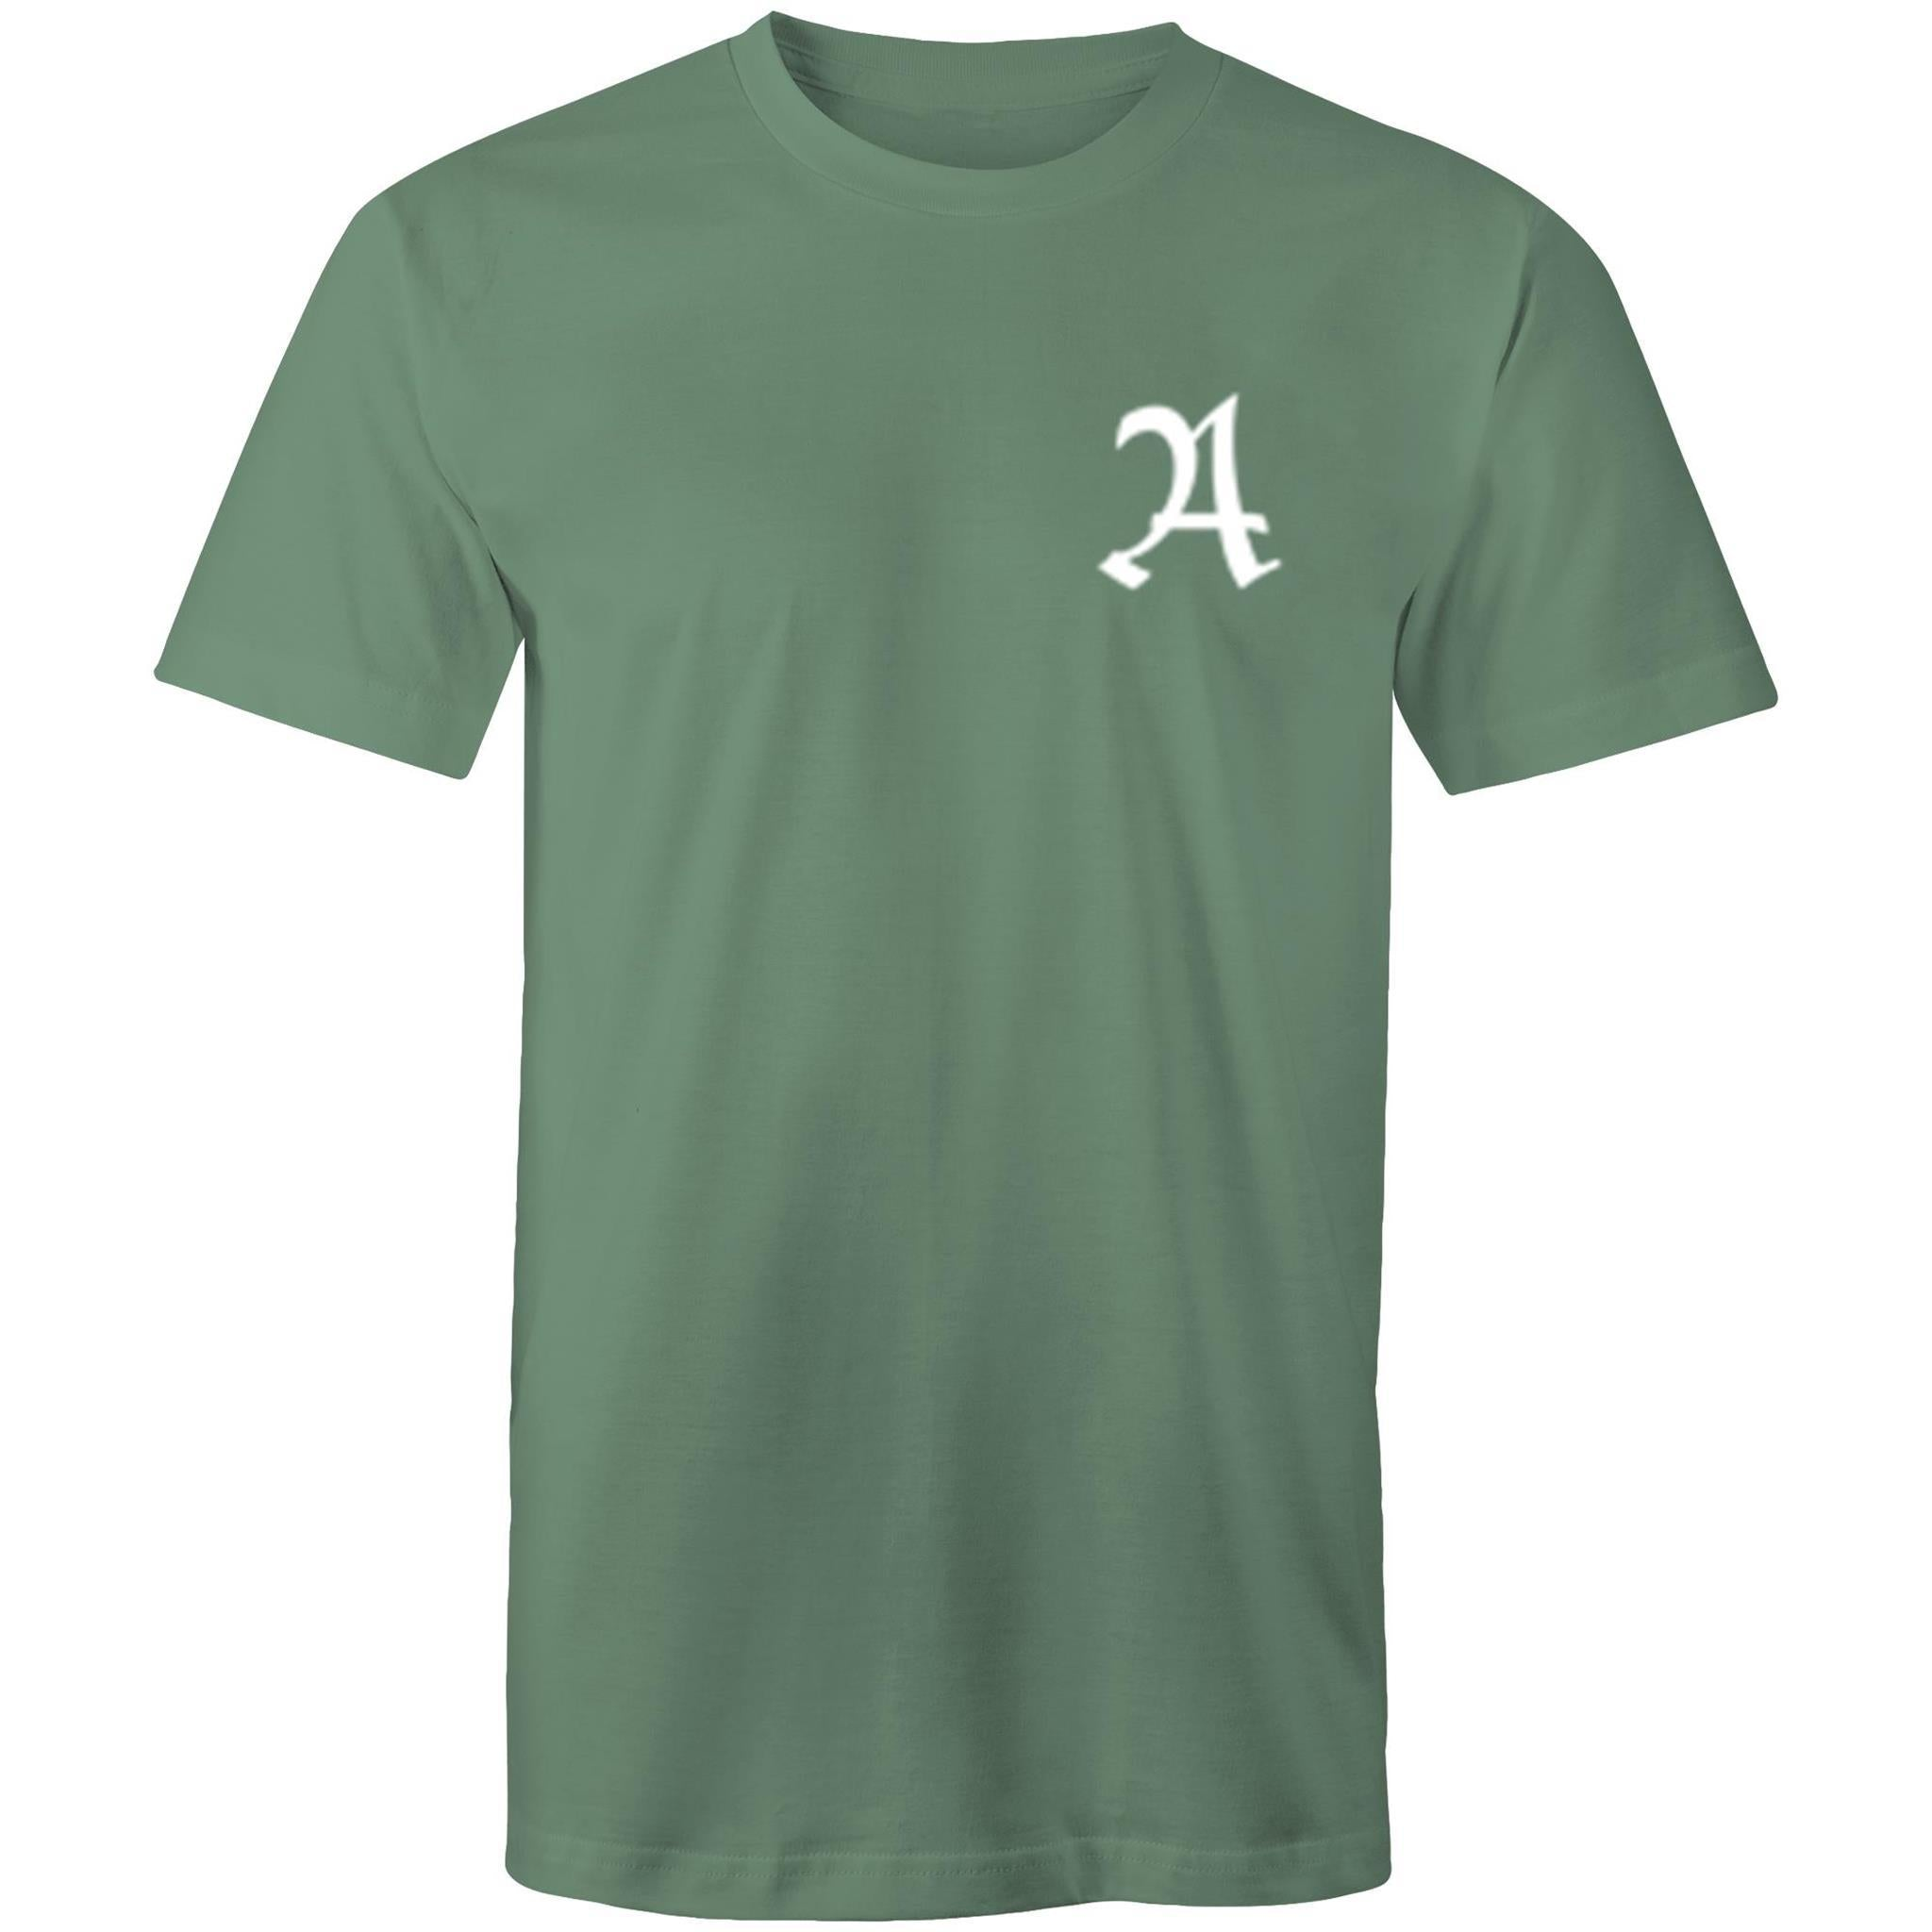 A - Colour Staple Mens T-Shirt - The Simple Selection